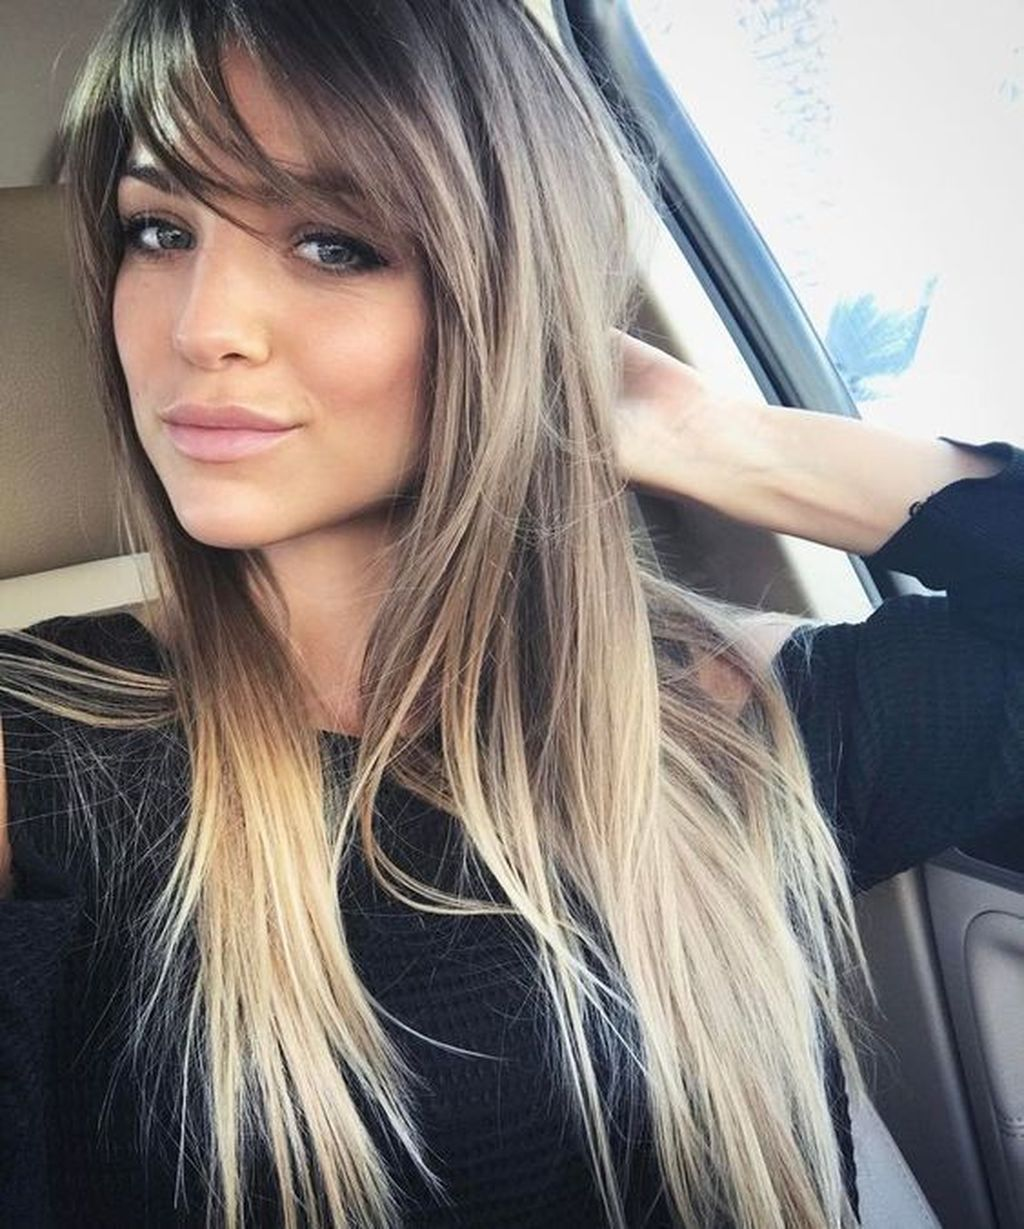 Cool Bangs For Long Hair: Cool 47 Best Hairstyles For Women With Long Hair